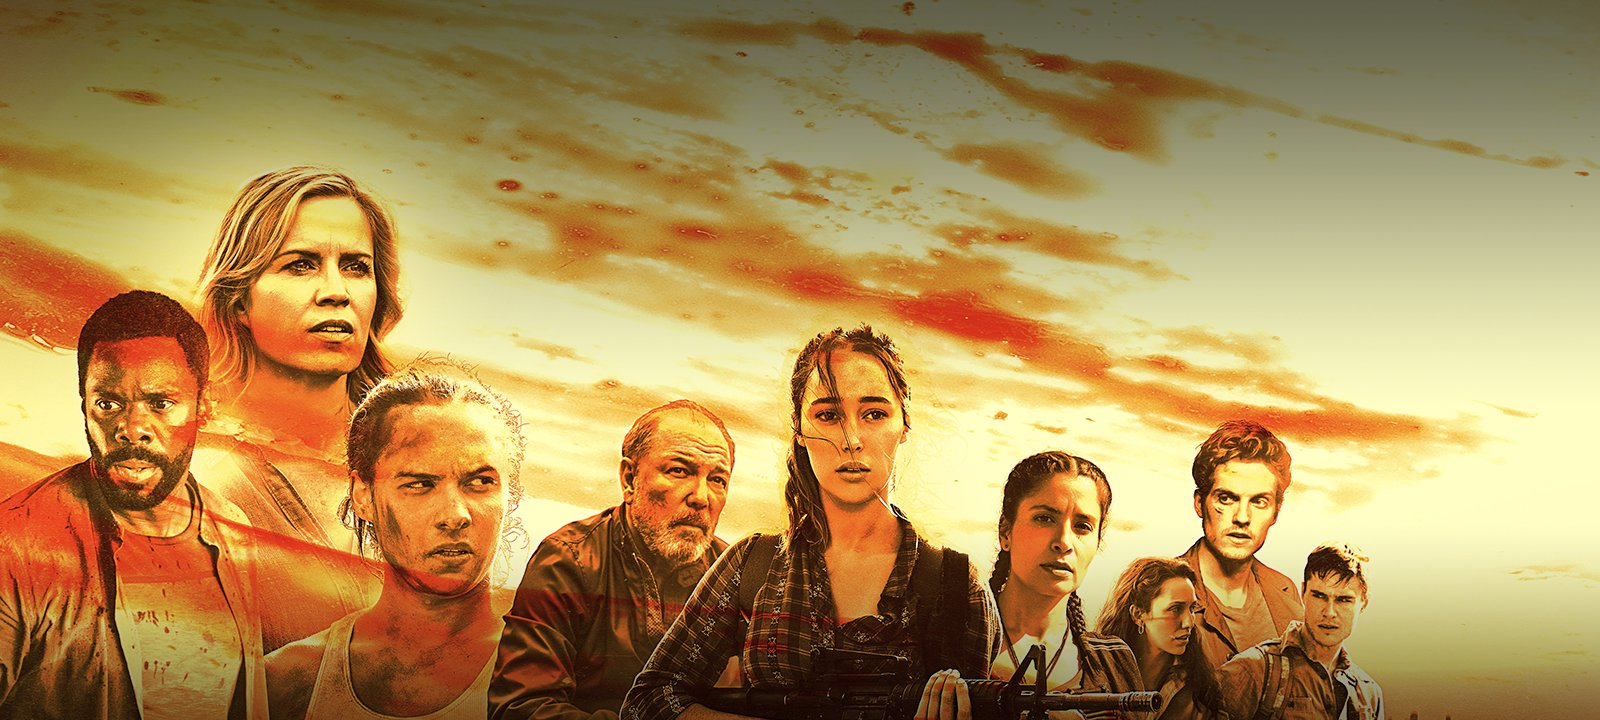 fear-the-walking-dead-season-3-cci-key-art-nick-dillane-madison-dickens-800×600